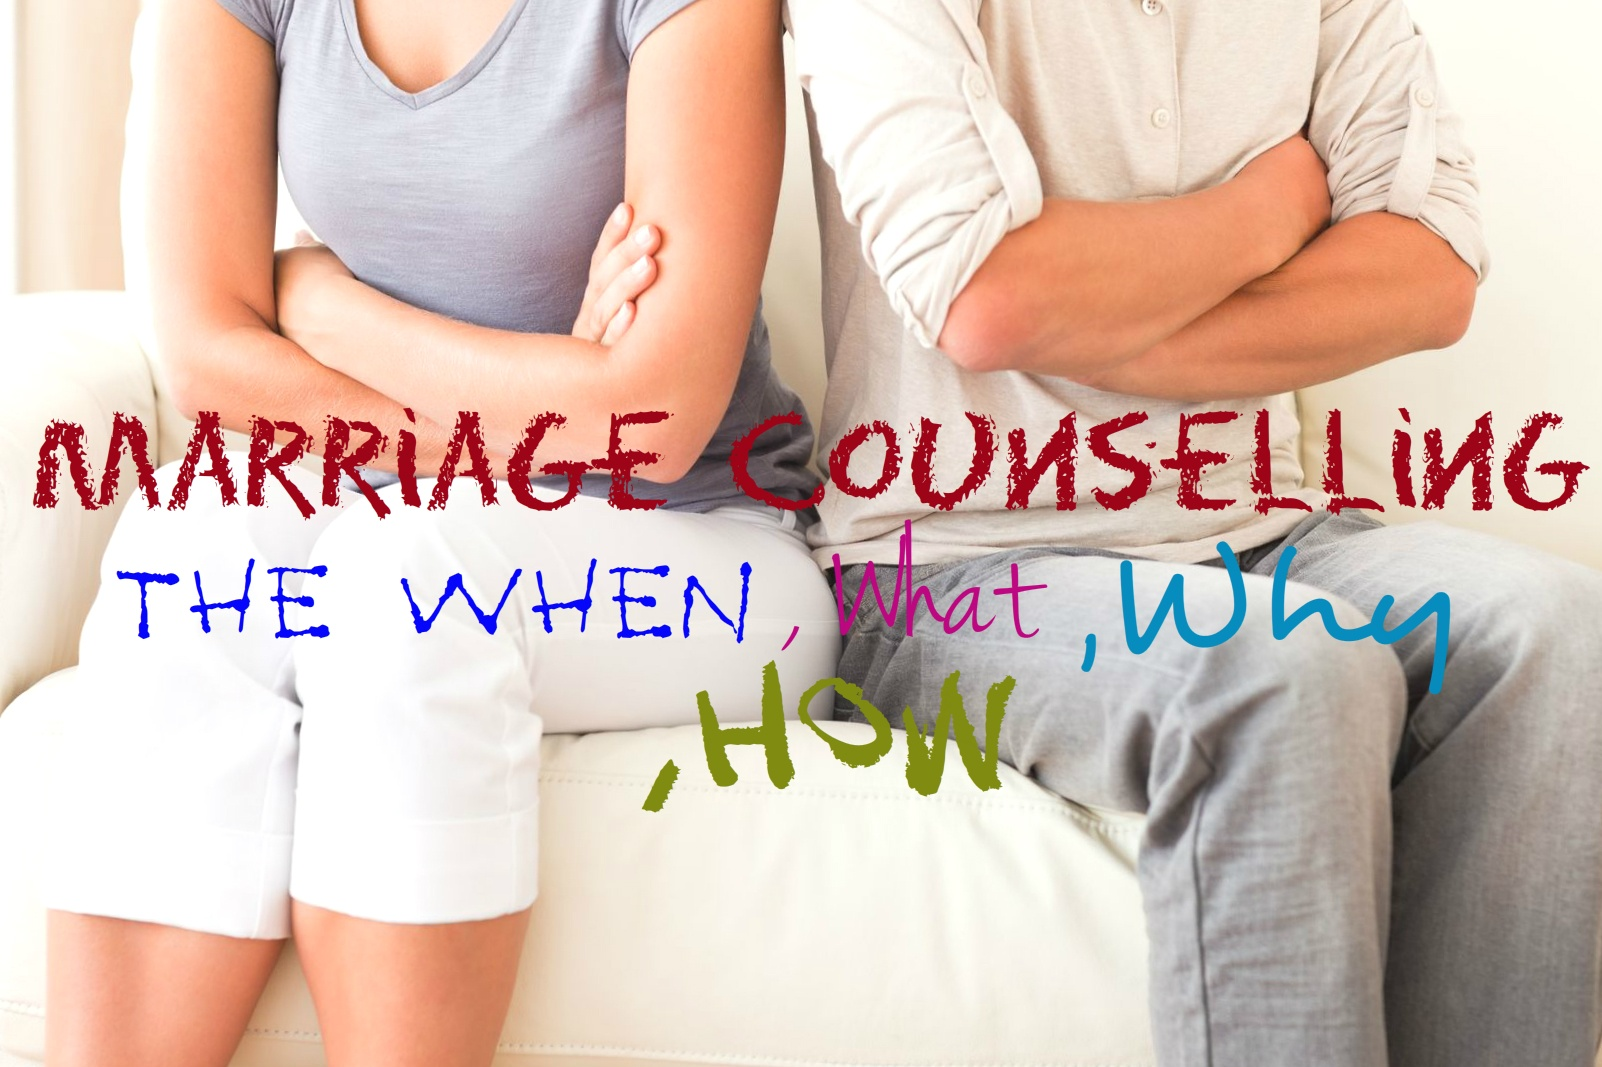 Marriage Counselling – The When, What, Why, How, couples sitting together